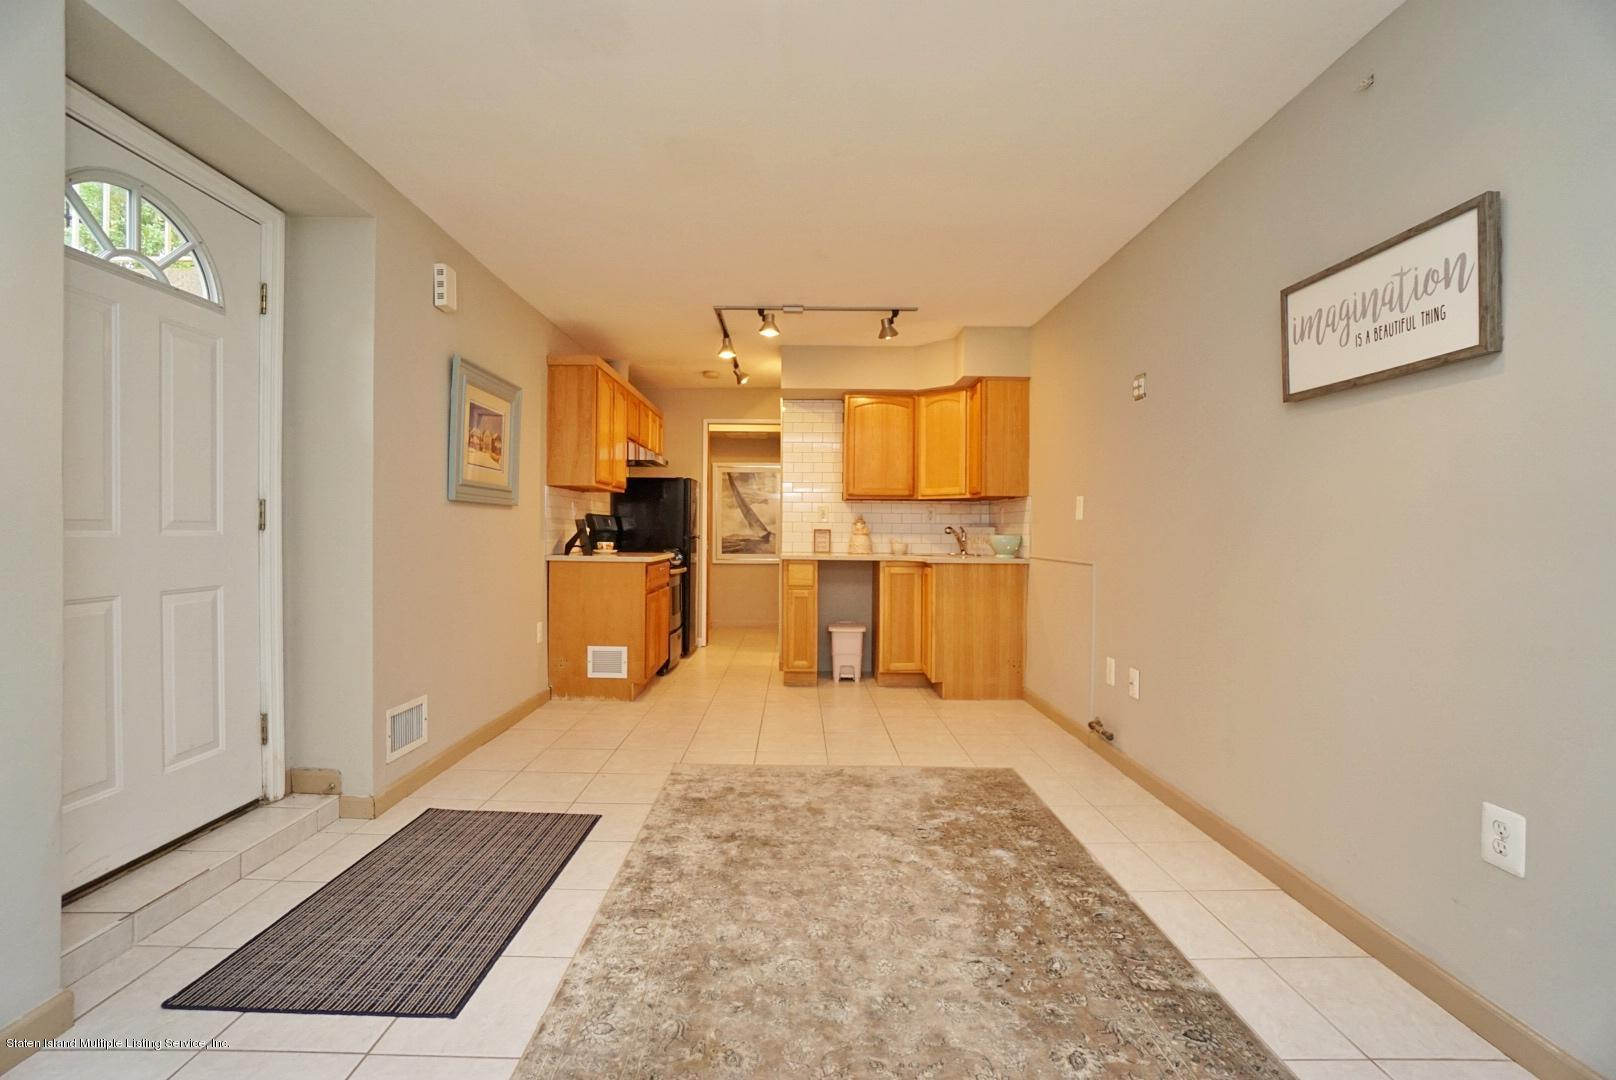 143 Foster Road,Staten Island,New York,10309,United States,3 Bedrooms Bedrooms,7 Rooms Rooms,4 BathroomsBathrooms,Residential,Foster,1132920